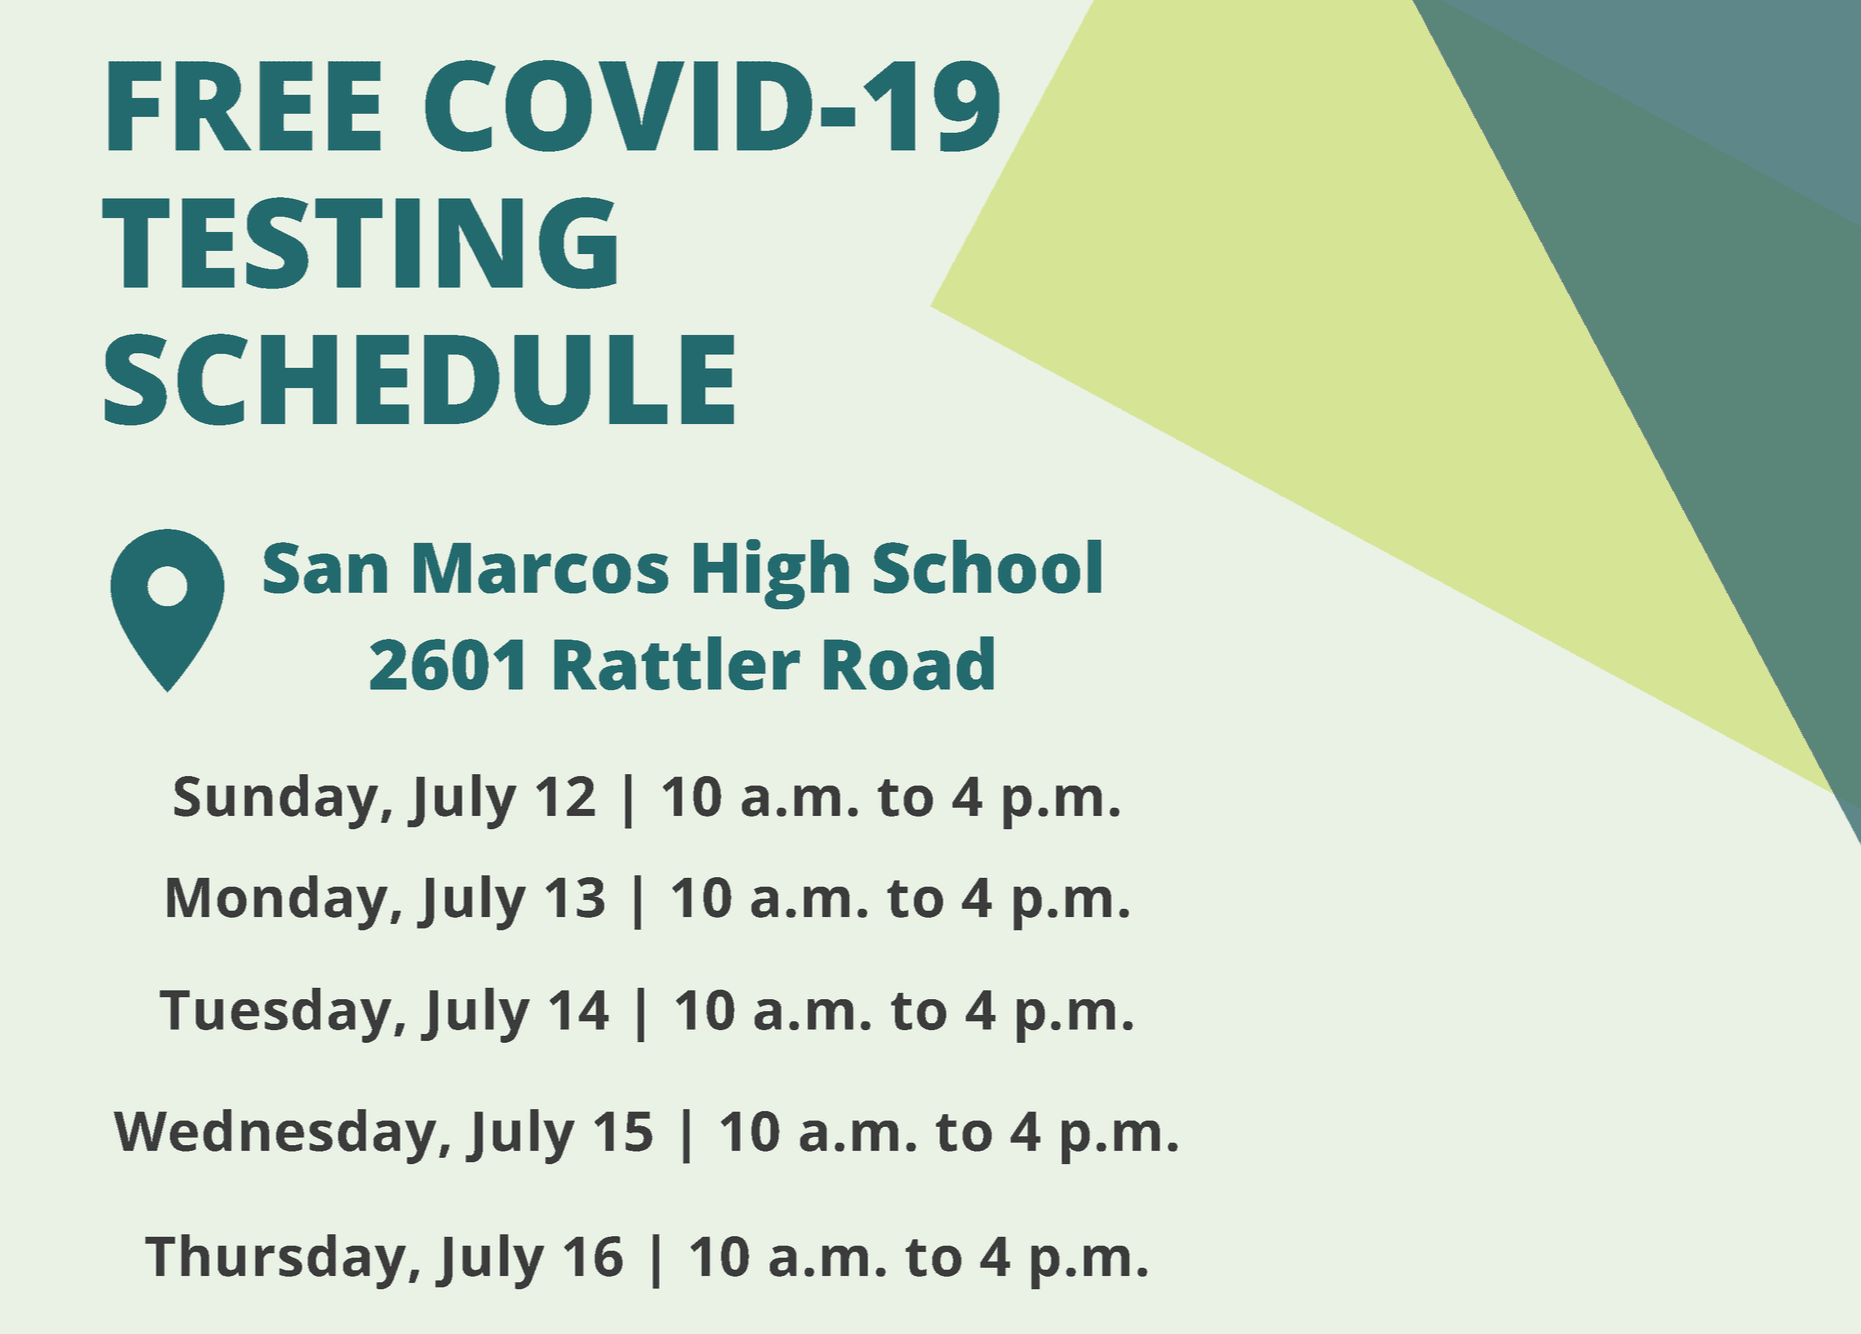 COVID-19 Testing Schedule for Hays County Graphic